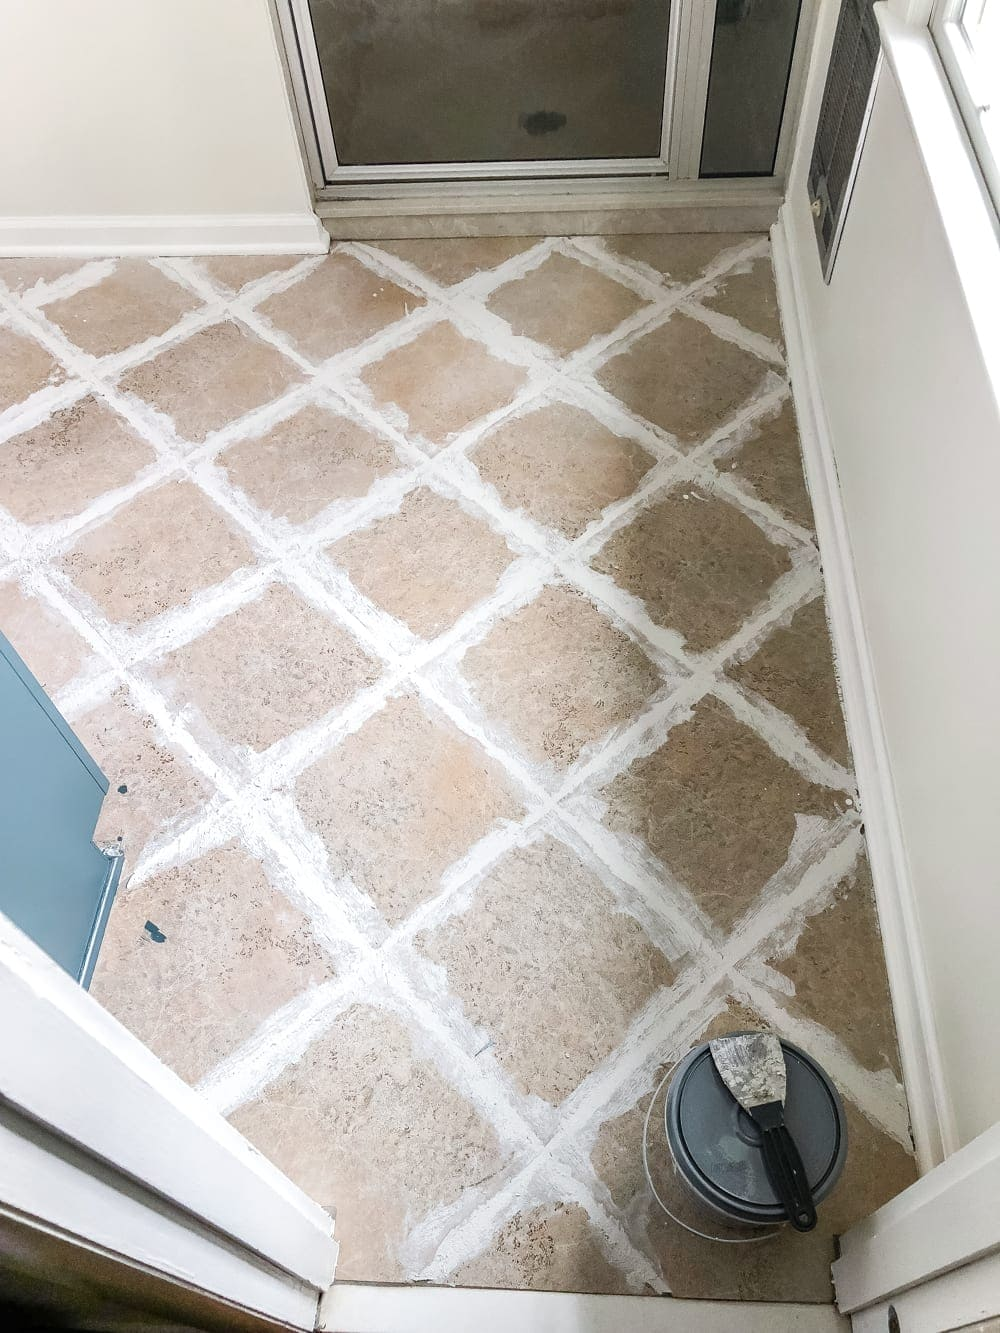 How to install sheet vinyl flooring over old tile | fill grout lines